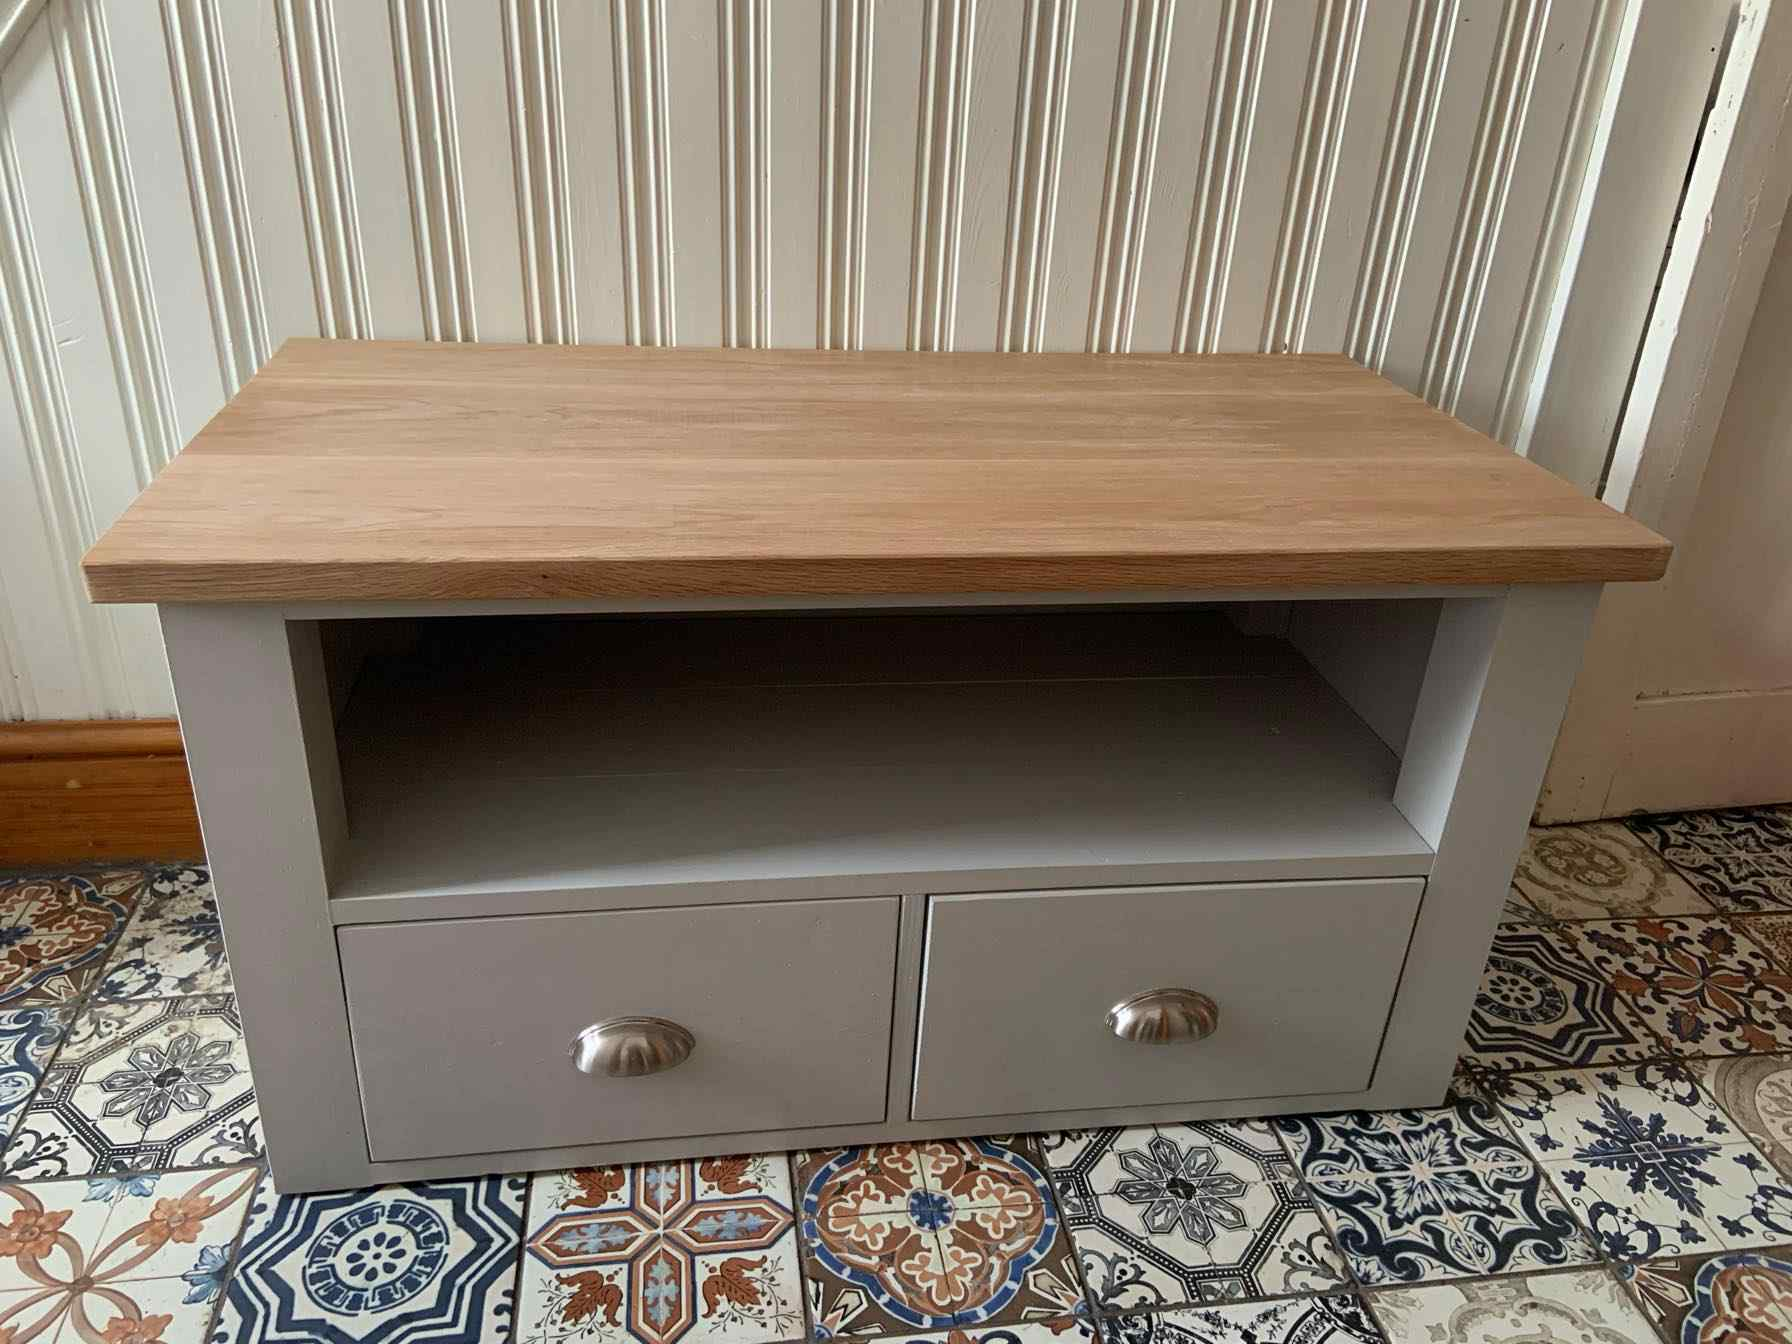 bespoke television stand reclaimed wood